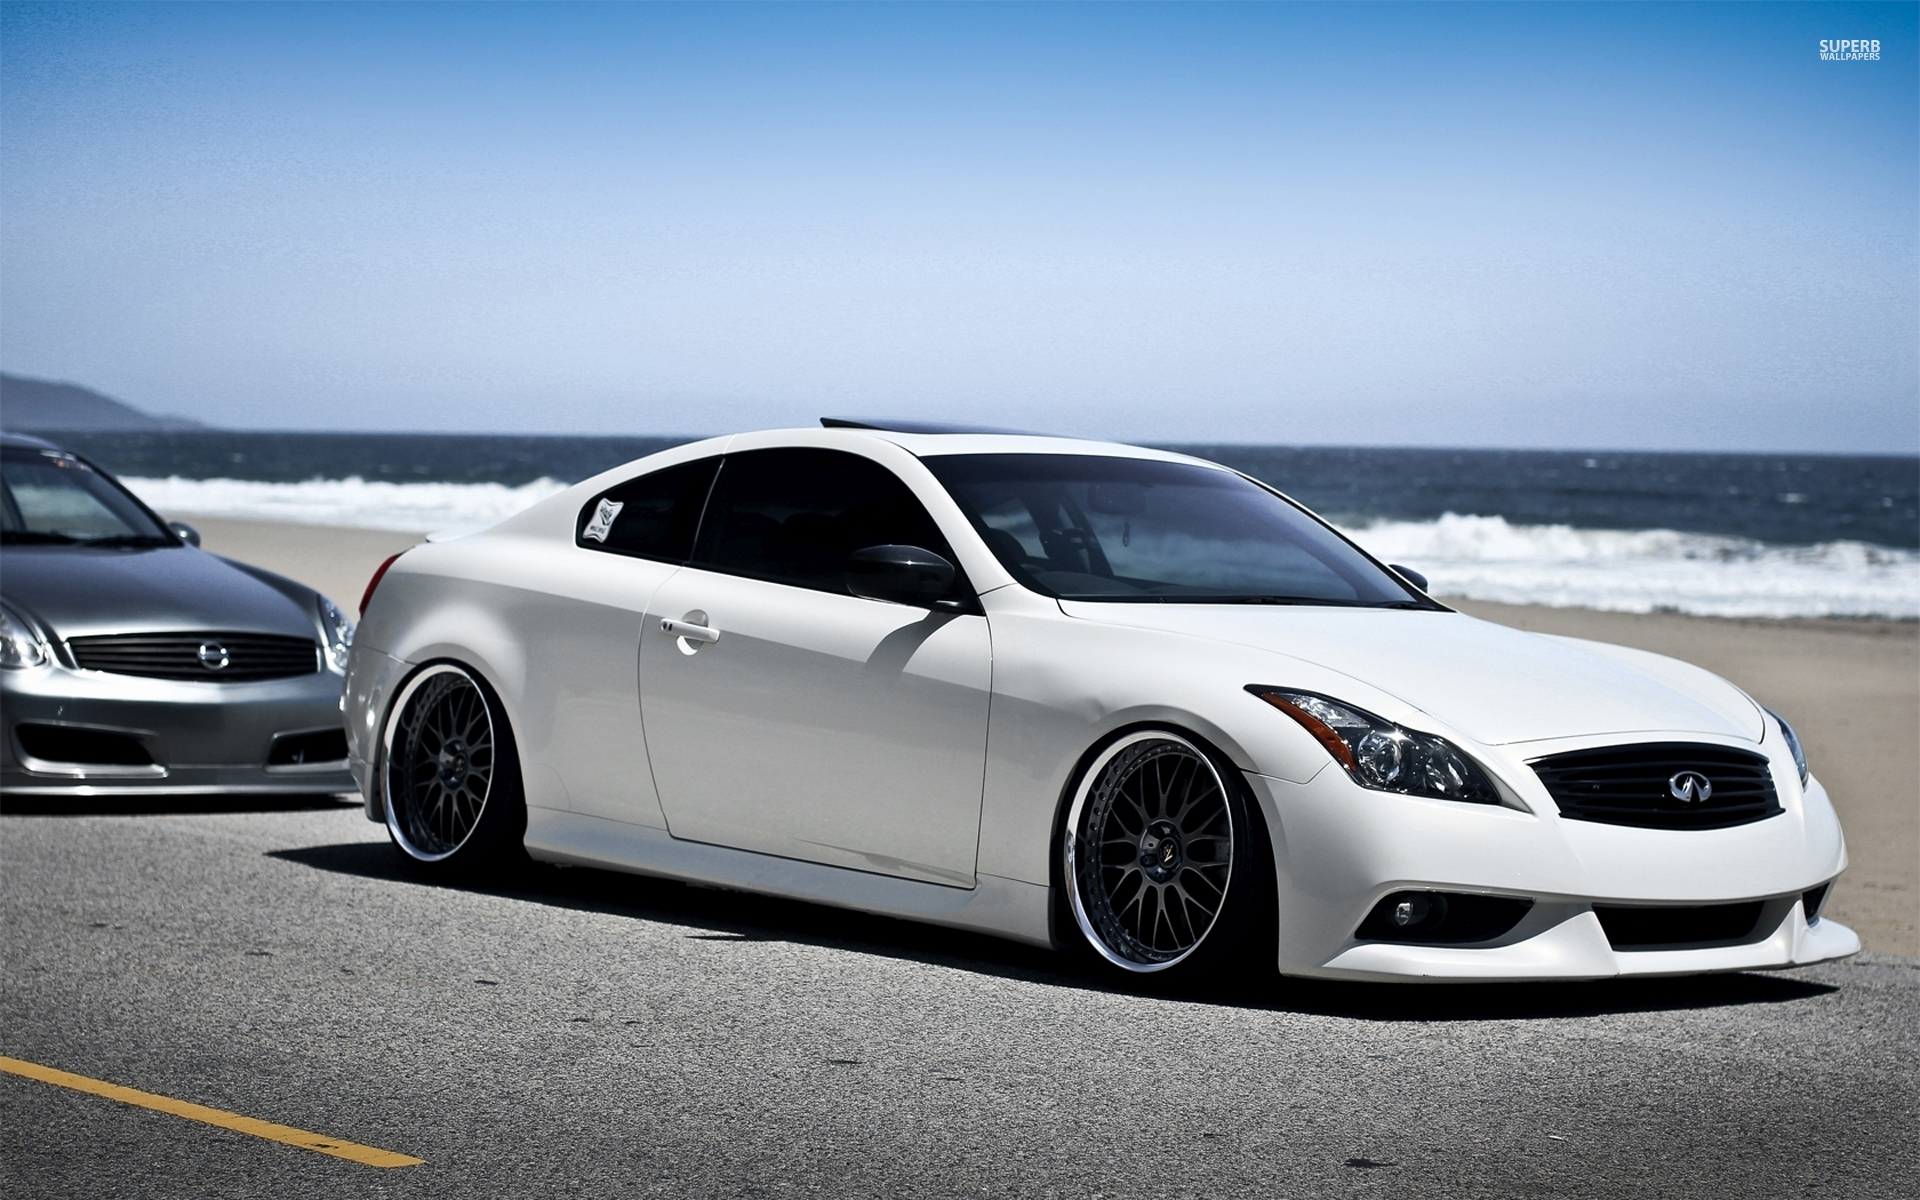 infiniti g37 coupe photos informations articles. Black Bedroom Furniture Sets. Home Design Ideas